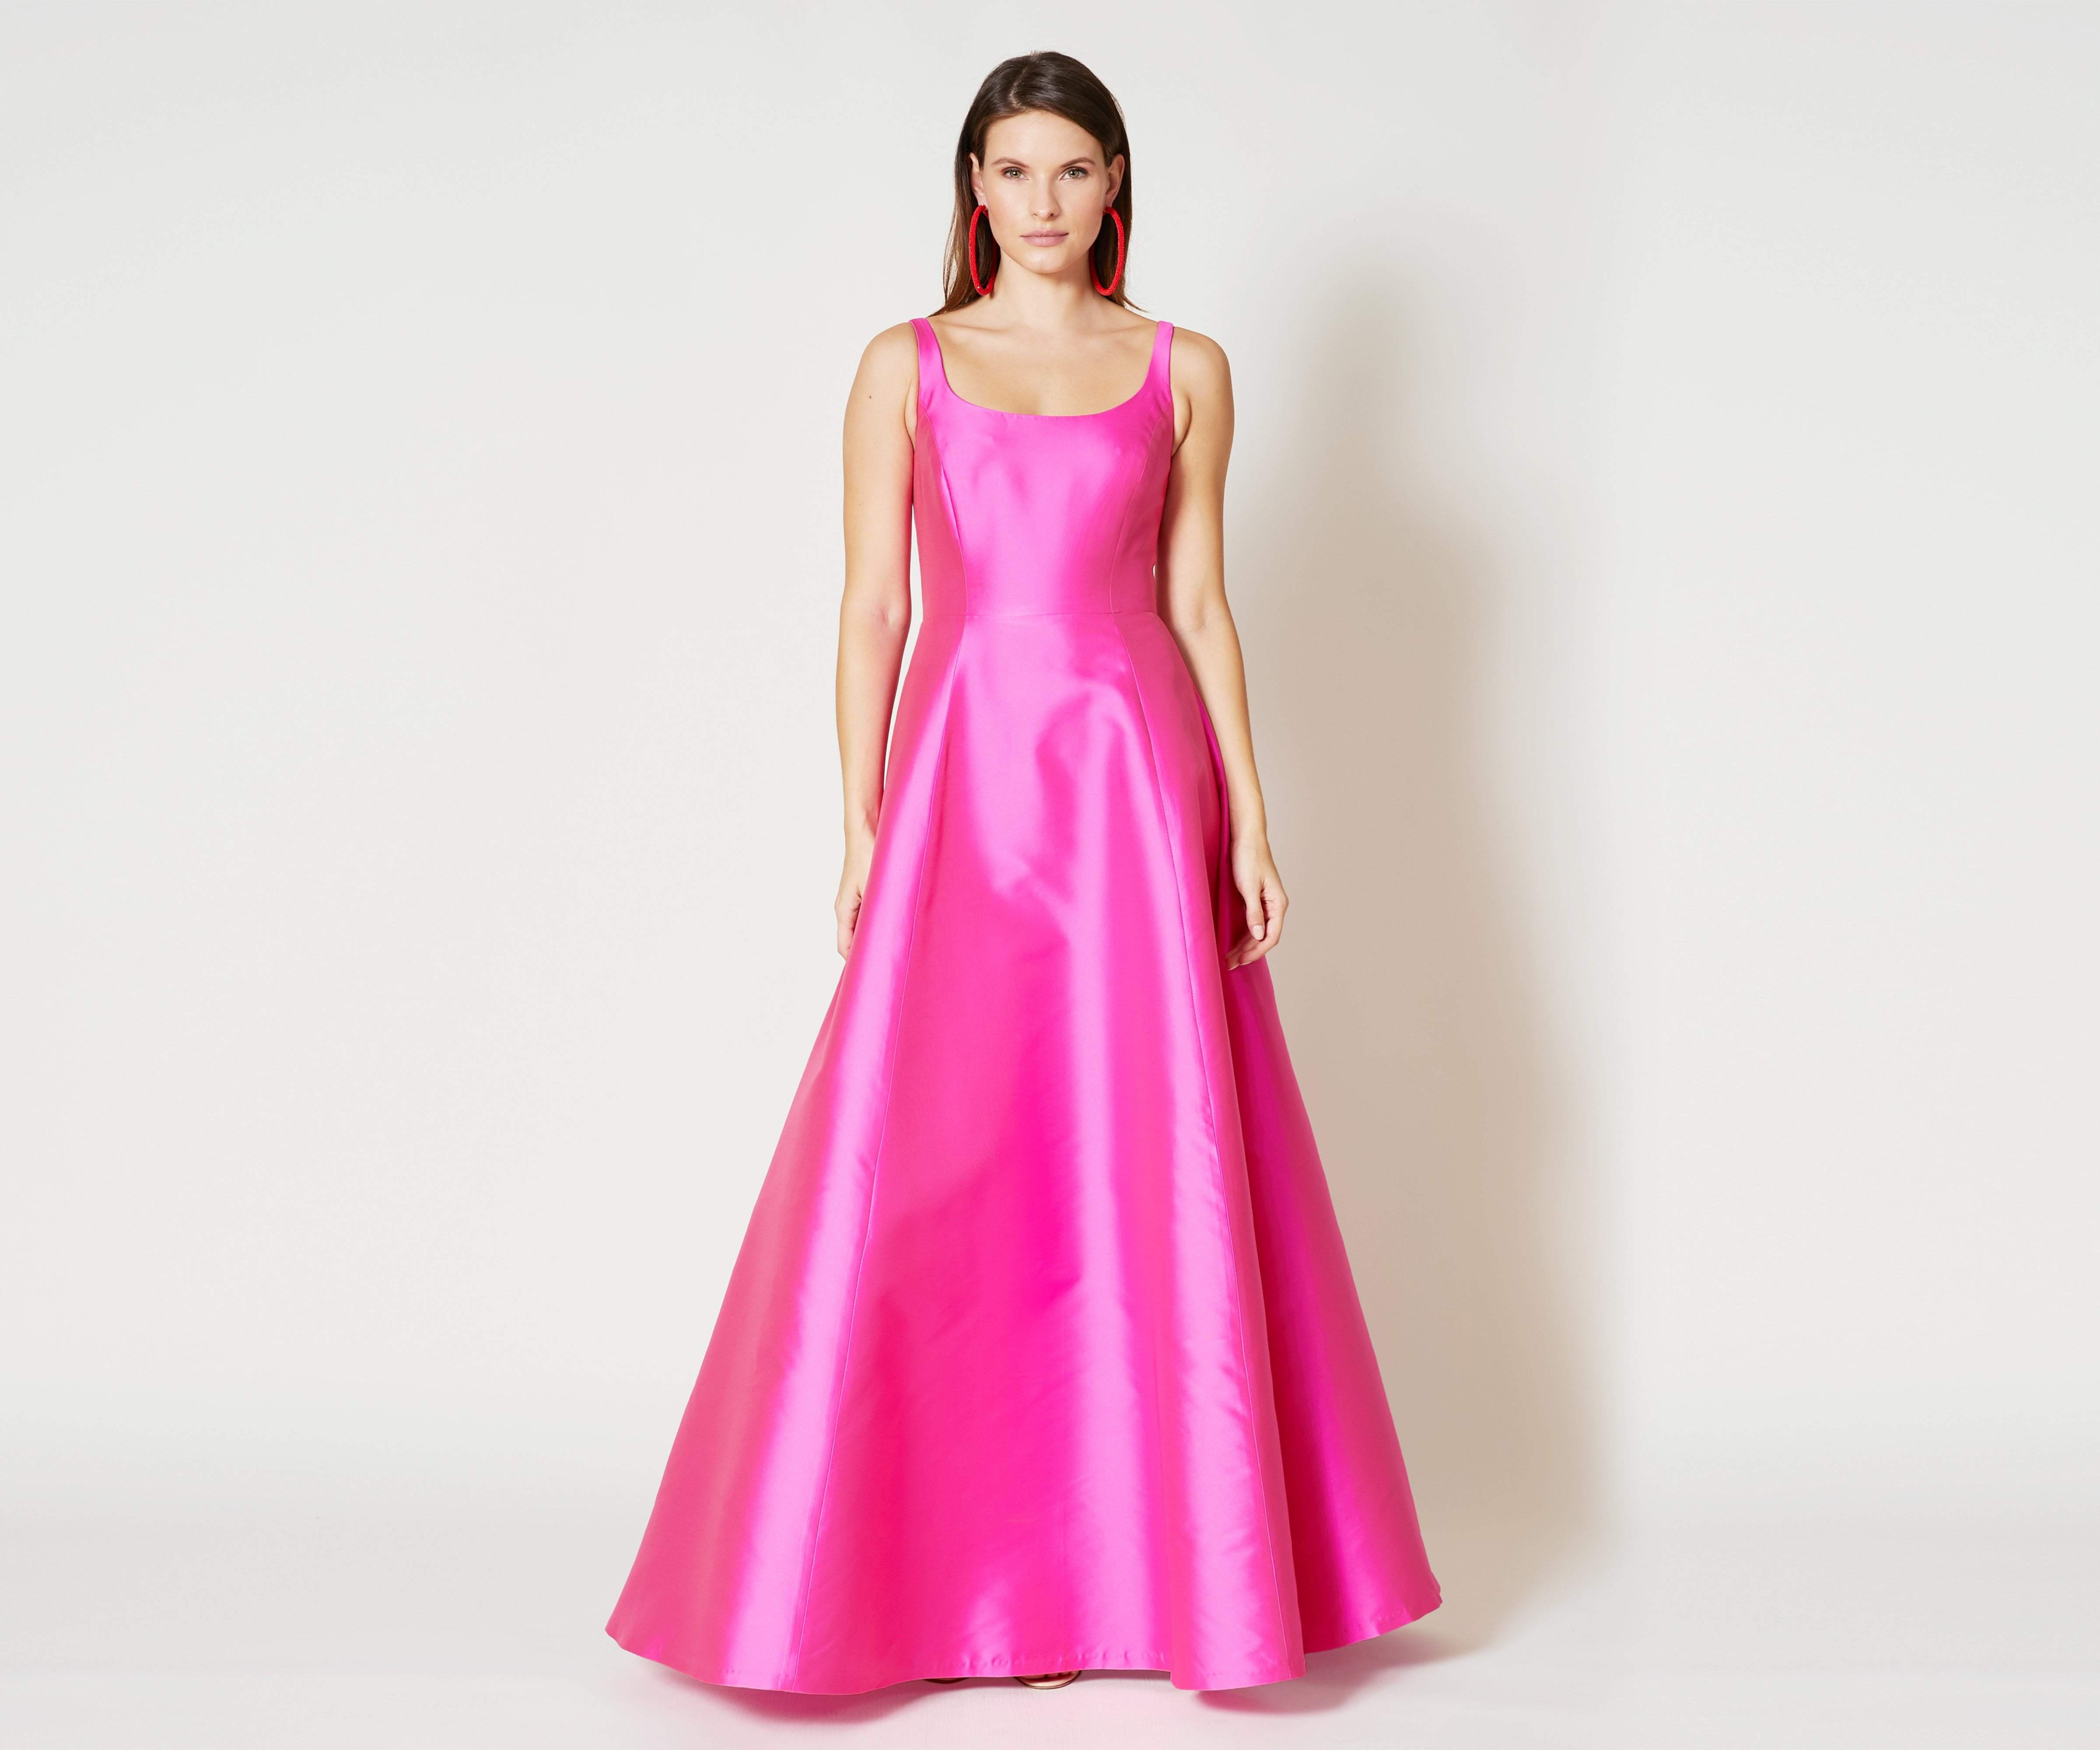 Kruse Gown